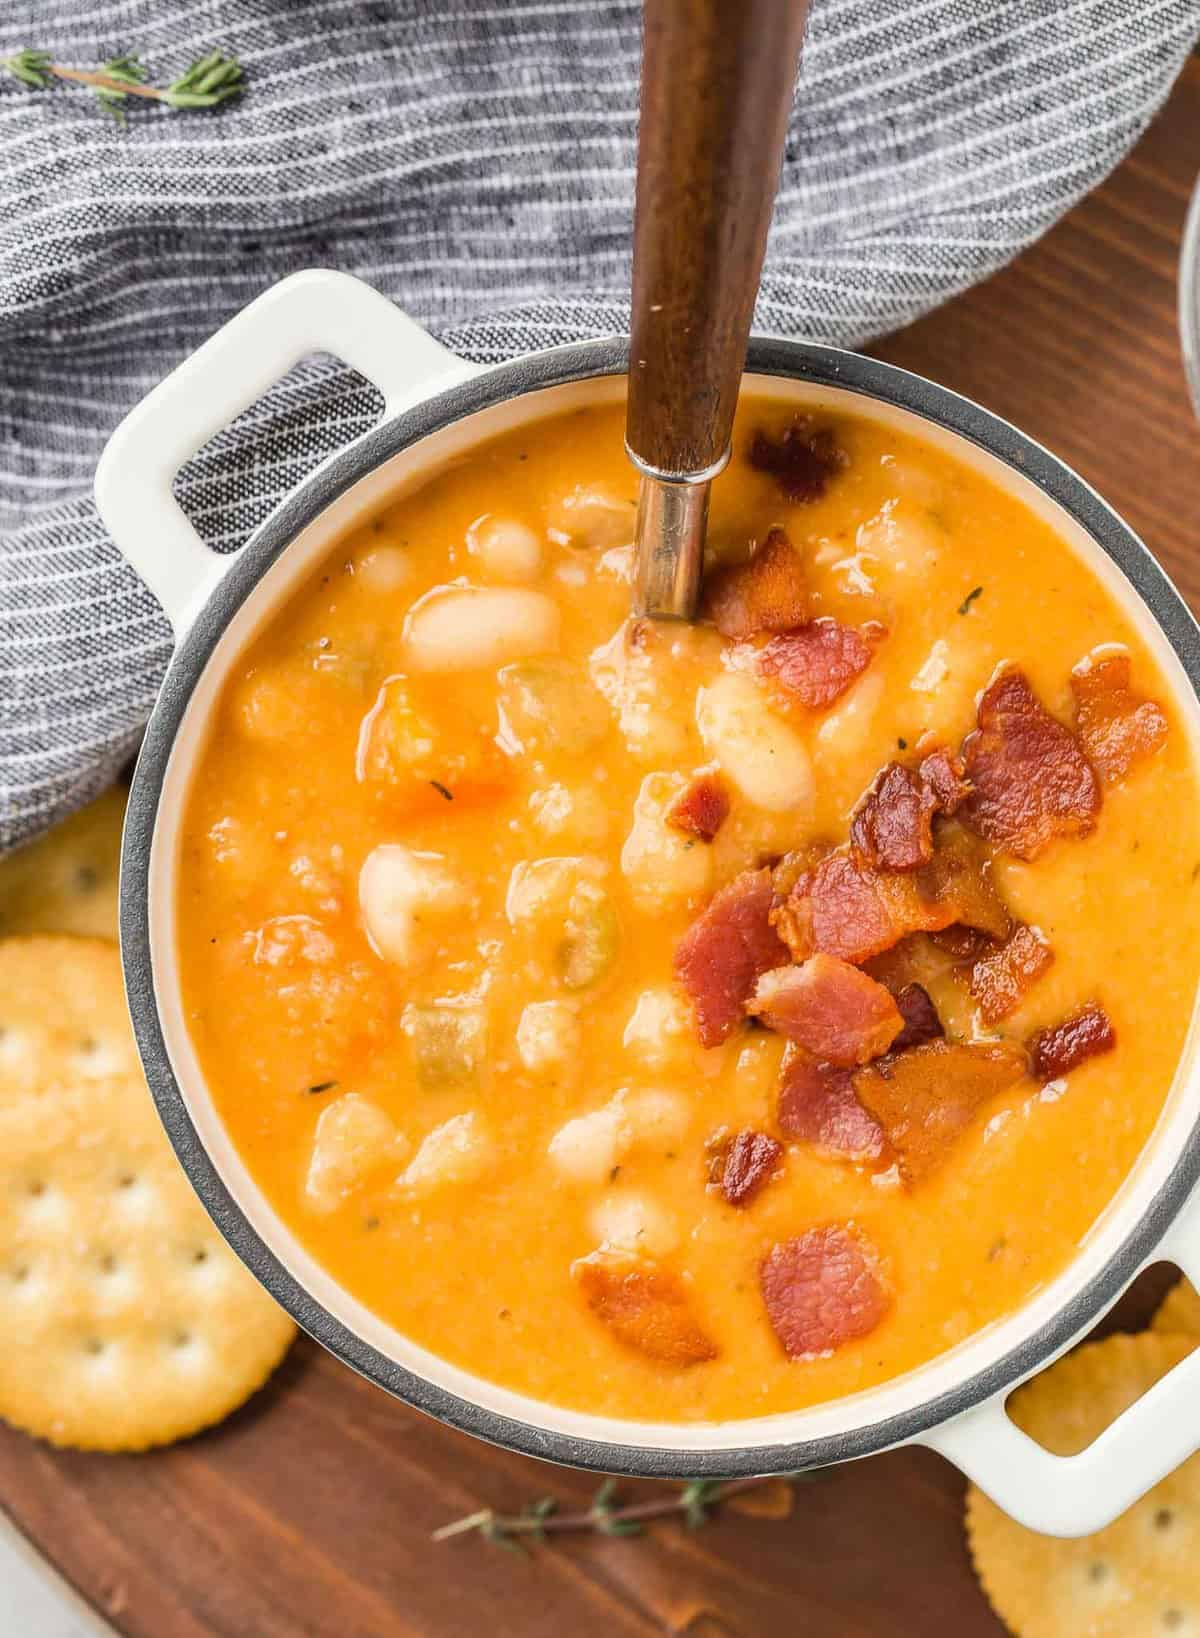 Overhead view of orange colored bean soup topped with crumbled bacon.